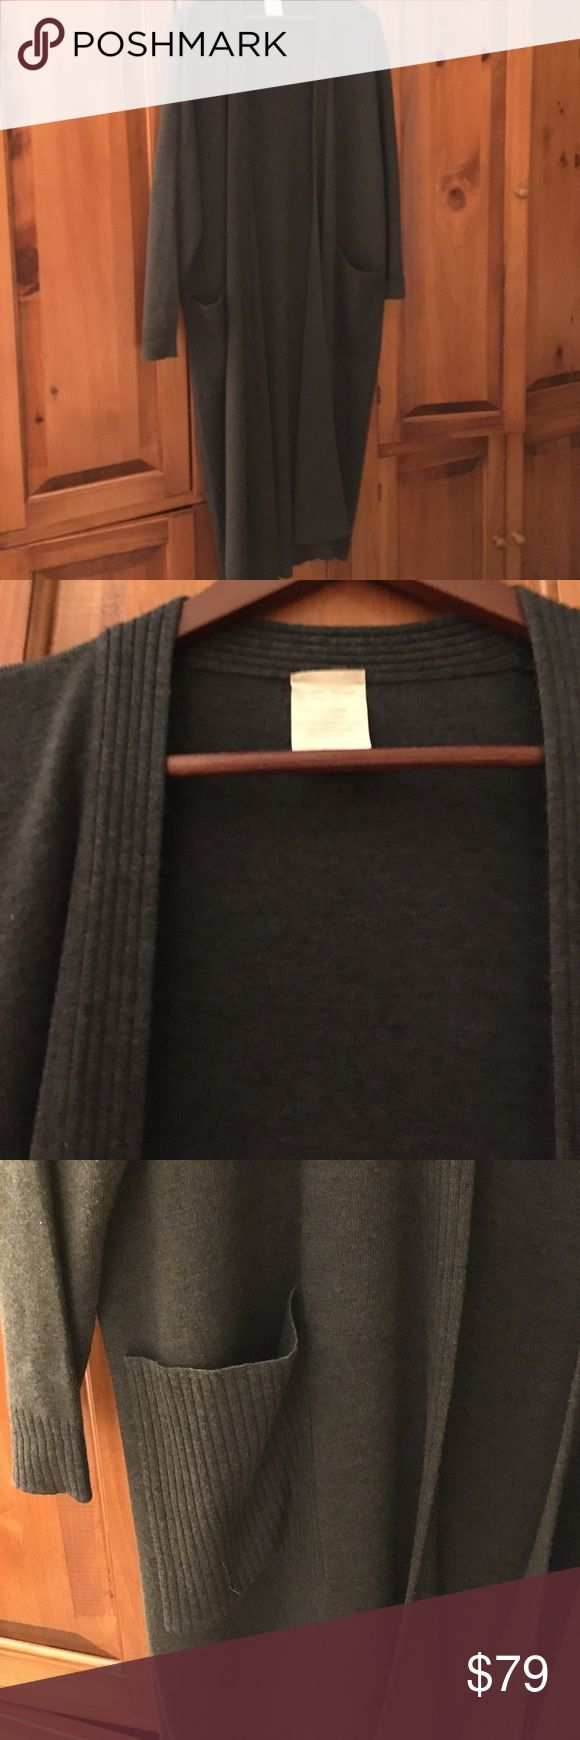 Charcoal grey wool duster/long cardigan 2X Great quality merino wool and acrylic open front. duster. Long sleeves. Two patch pockets. Ribbed trim all around and down the front, on pockets, and cuffs. Pristine condition. Bought at Saks Fifth Avenue. Made in Italy. 49.5 inches long. Generous draped sizing. 27 inches armpit to armpit although the front is open/ no buttons or fastenings. Great transitional sweater coat. Stizzoli Sweaters Cardigans